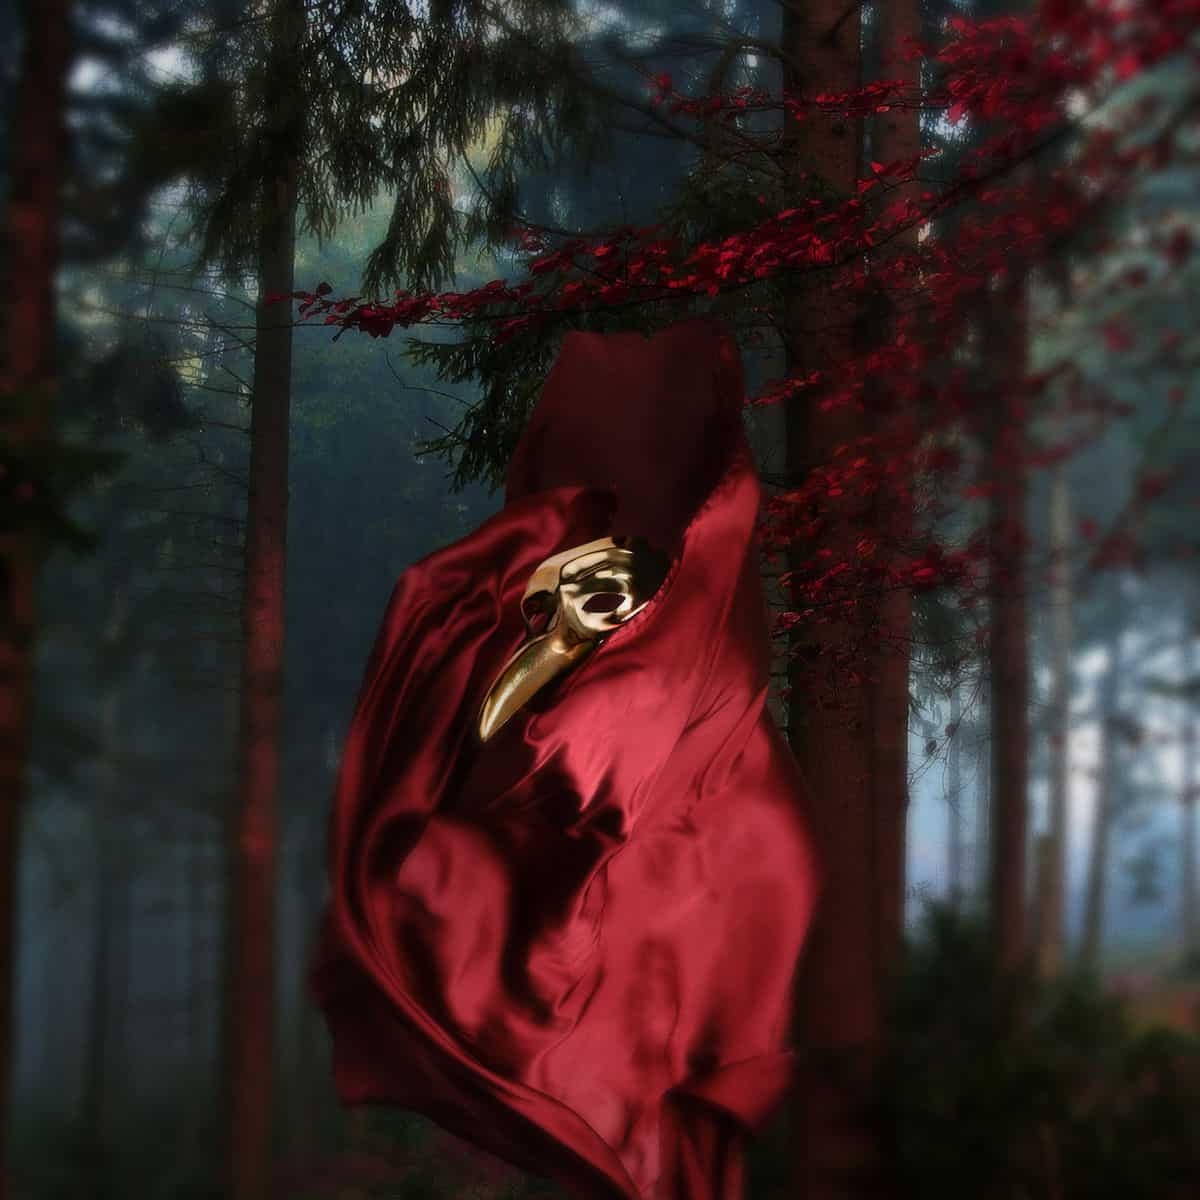 claptone_feat_nathan_nicholson-under_the_moon_s